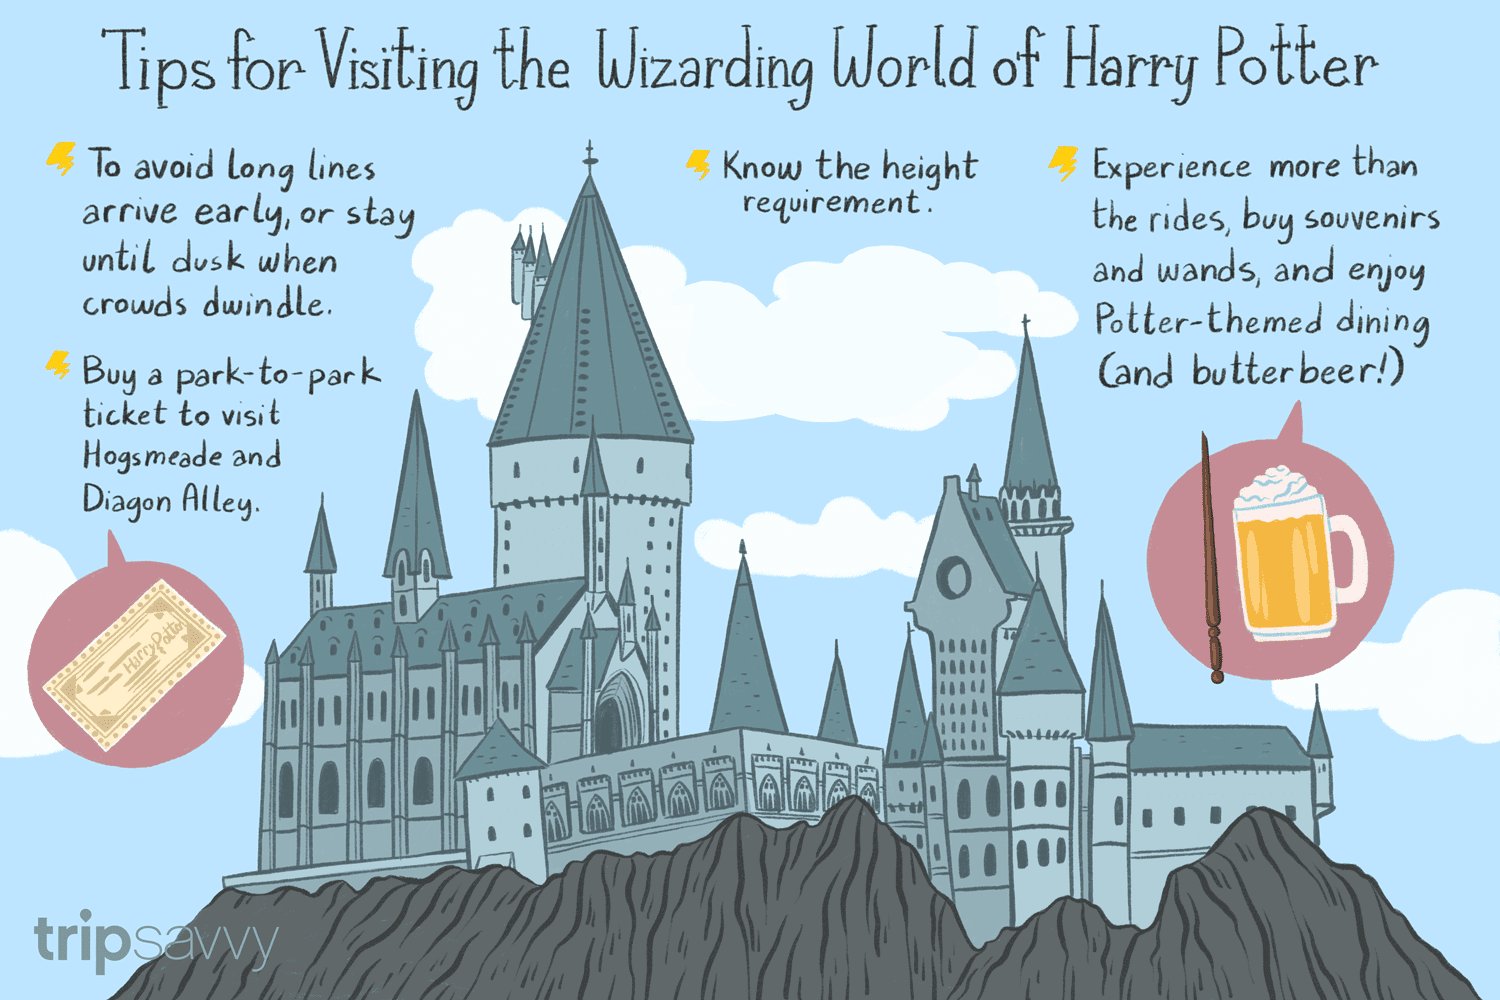 bca438dd5 A Playground for Potterheads. Tips for Visiting the Wizarding World of Harry  Potter